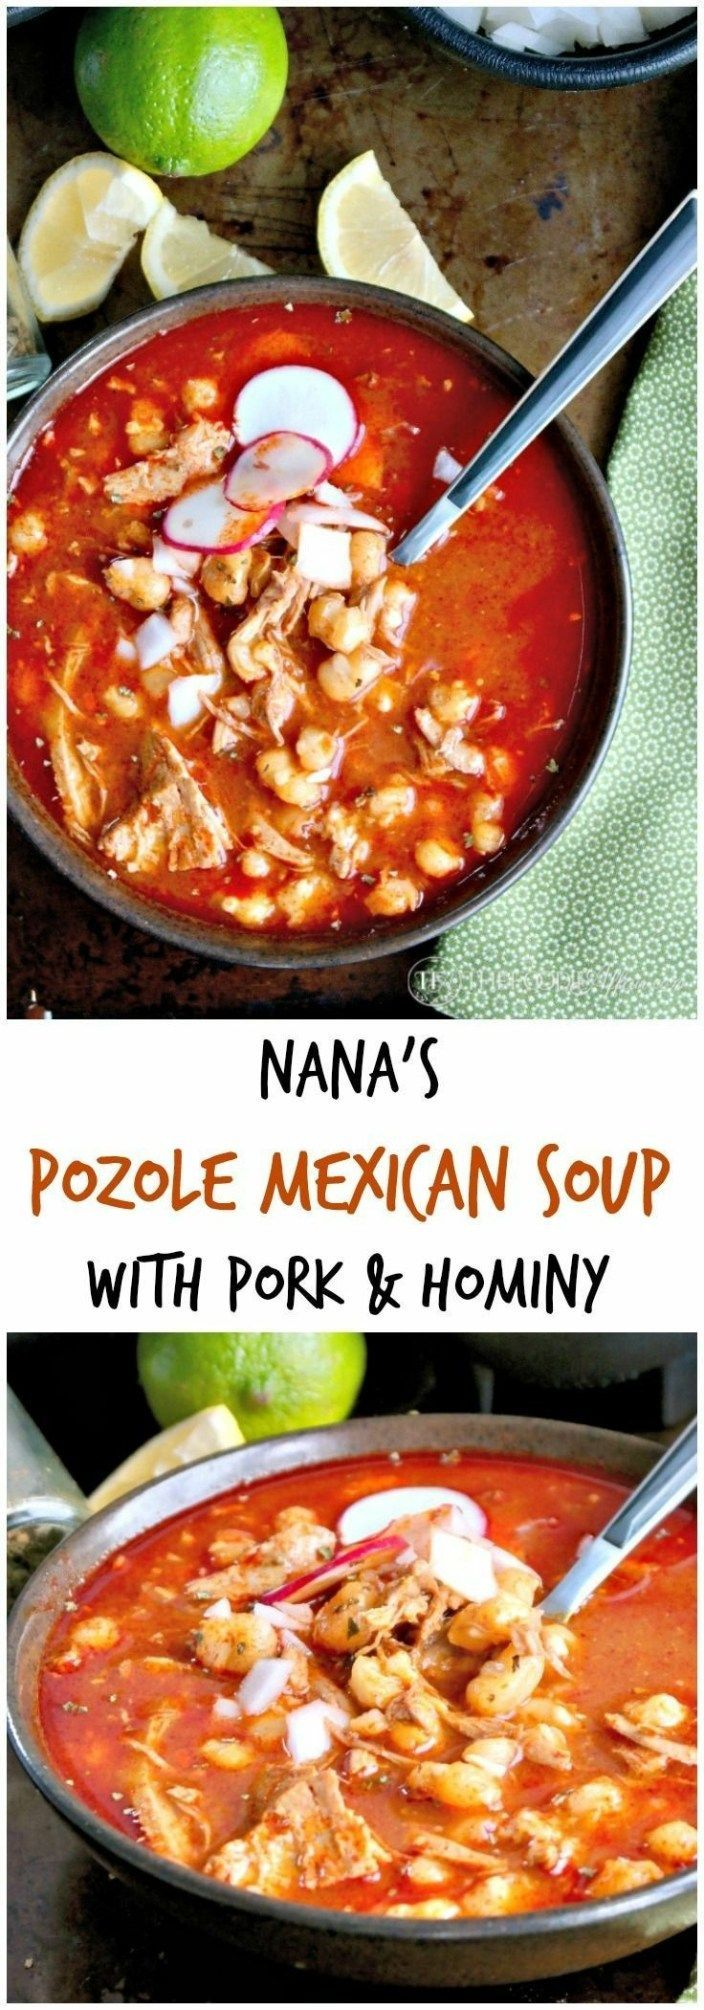 Photo of Nanas Pozole Mexican soup